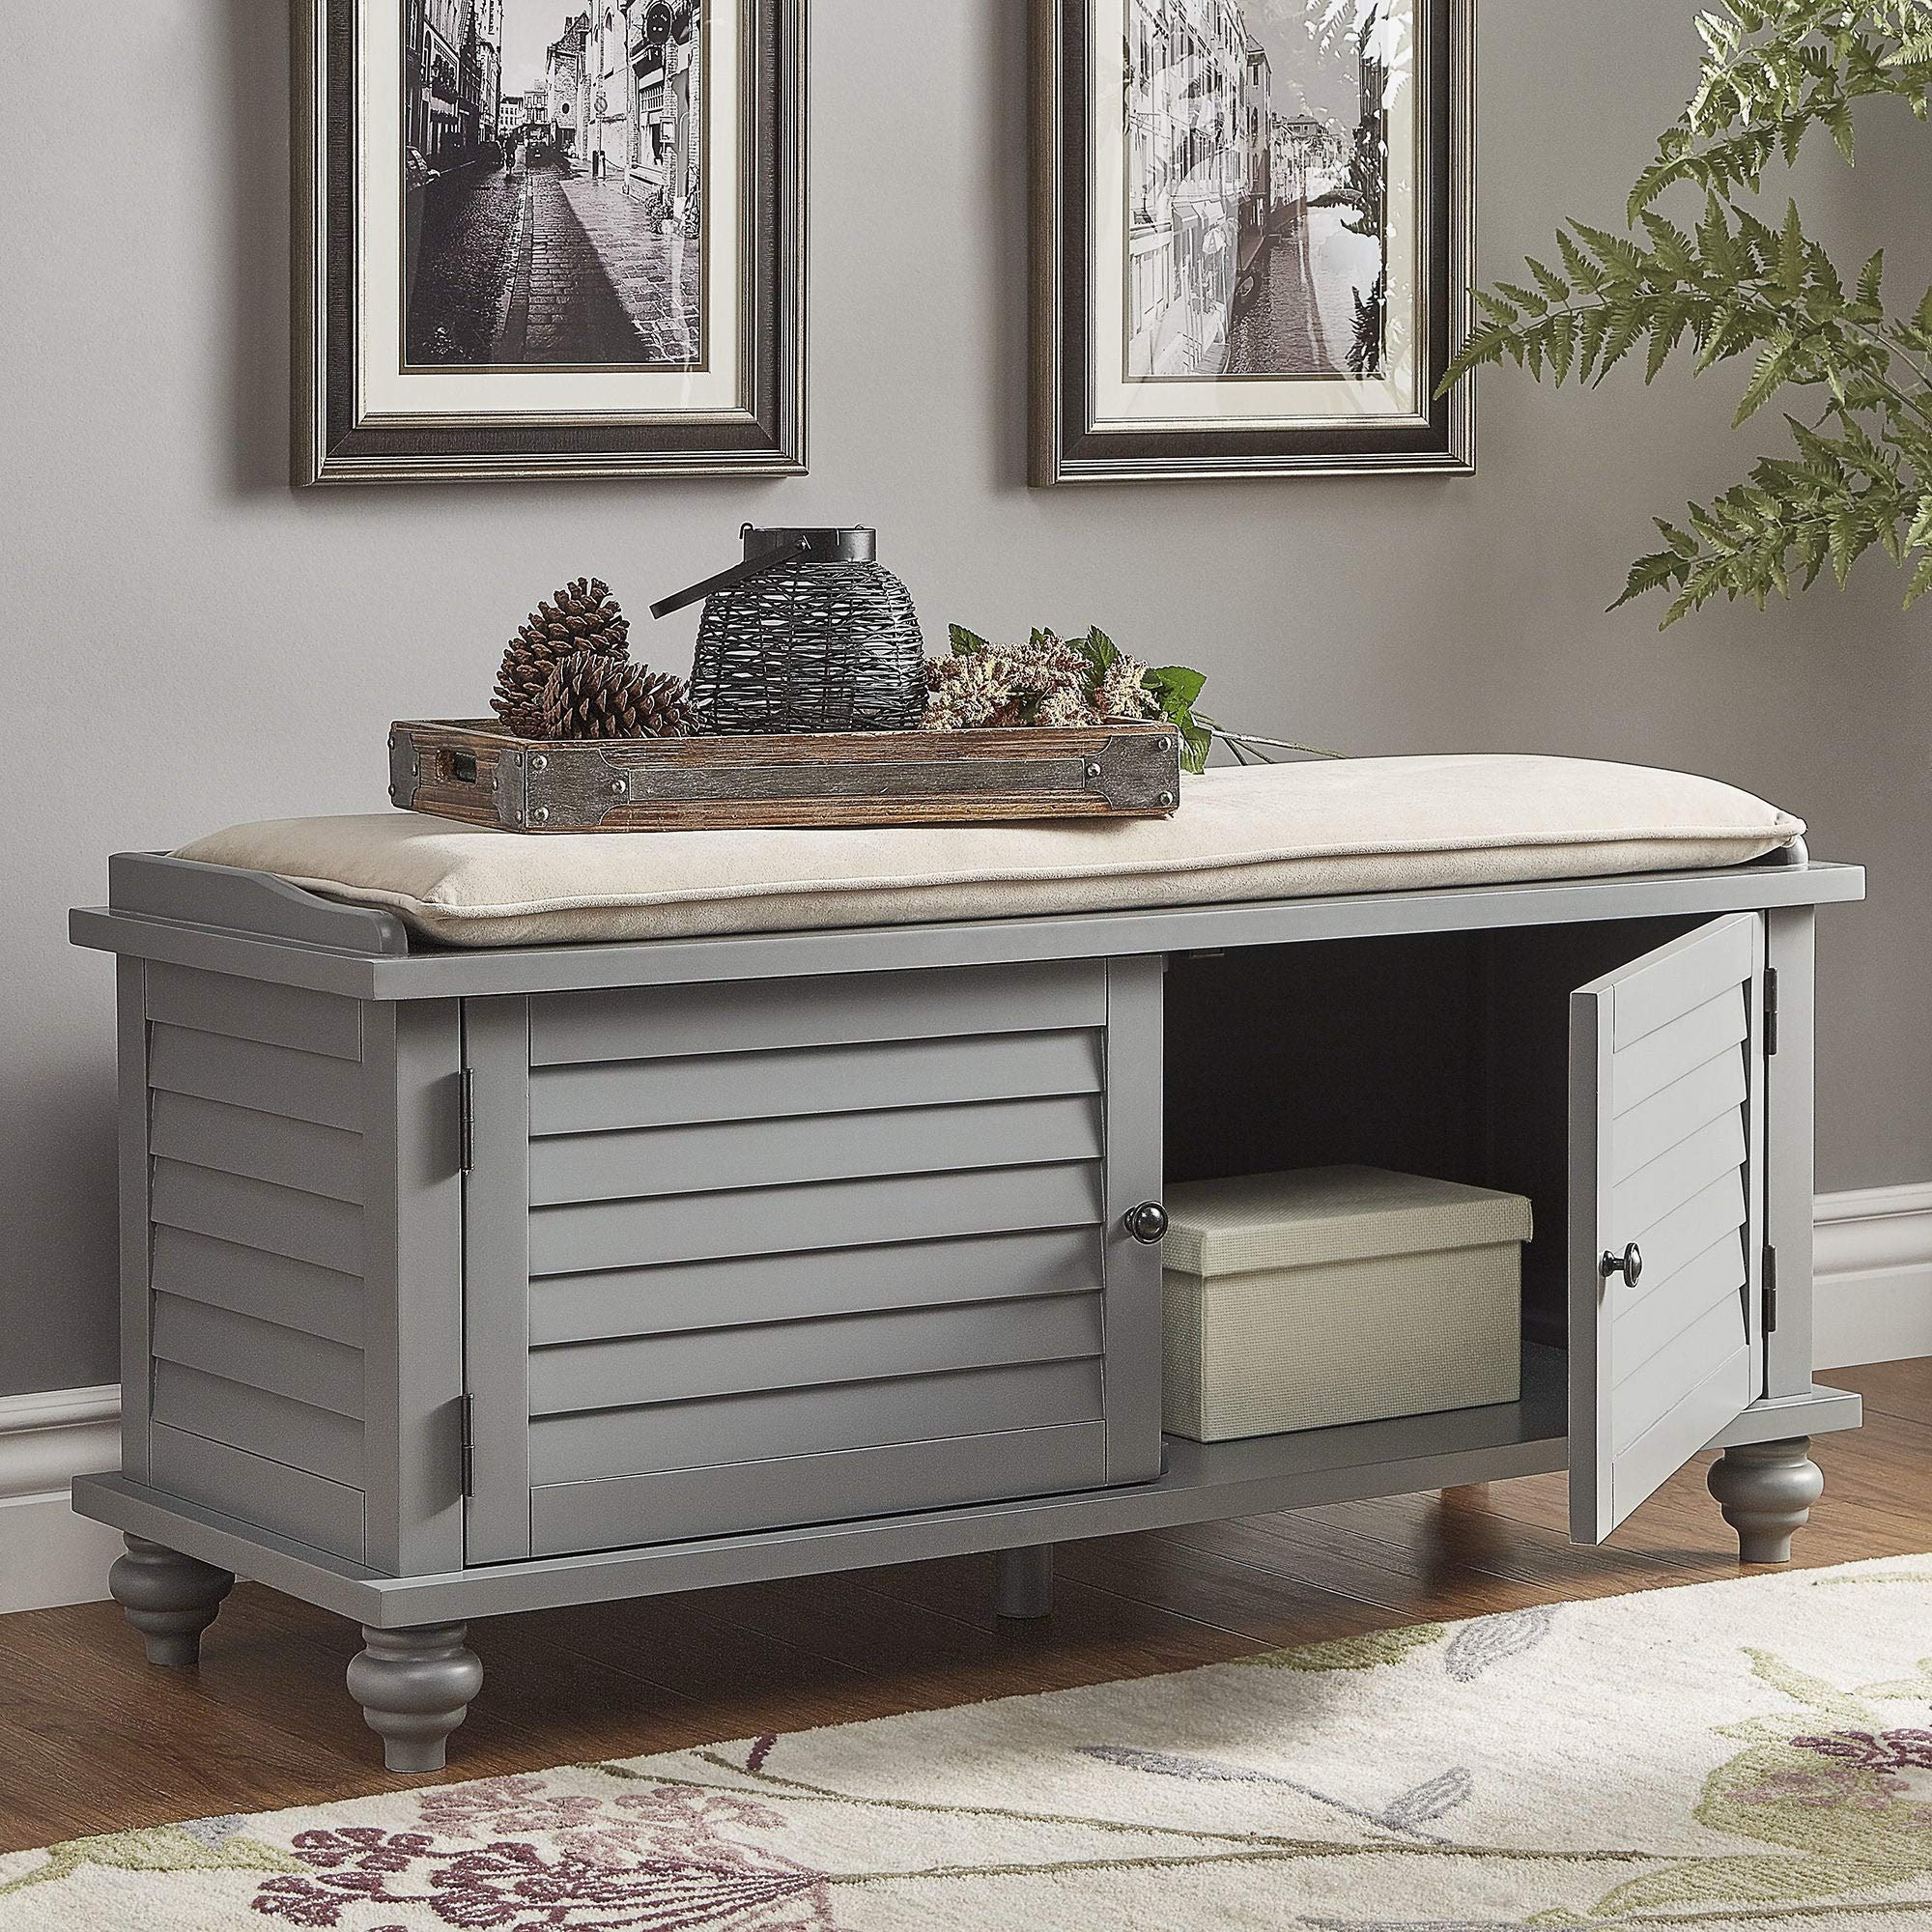 Inspire Q Maybelle Beige Velvet Cushioned Shutter Door Storage Bench by Classic Grey Painted by Inspire Q